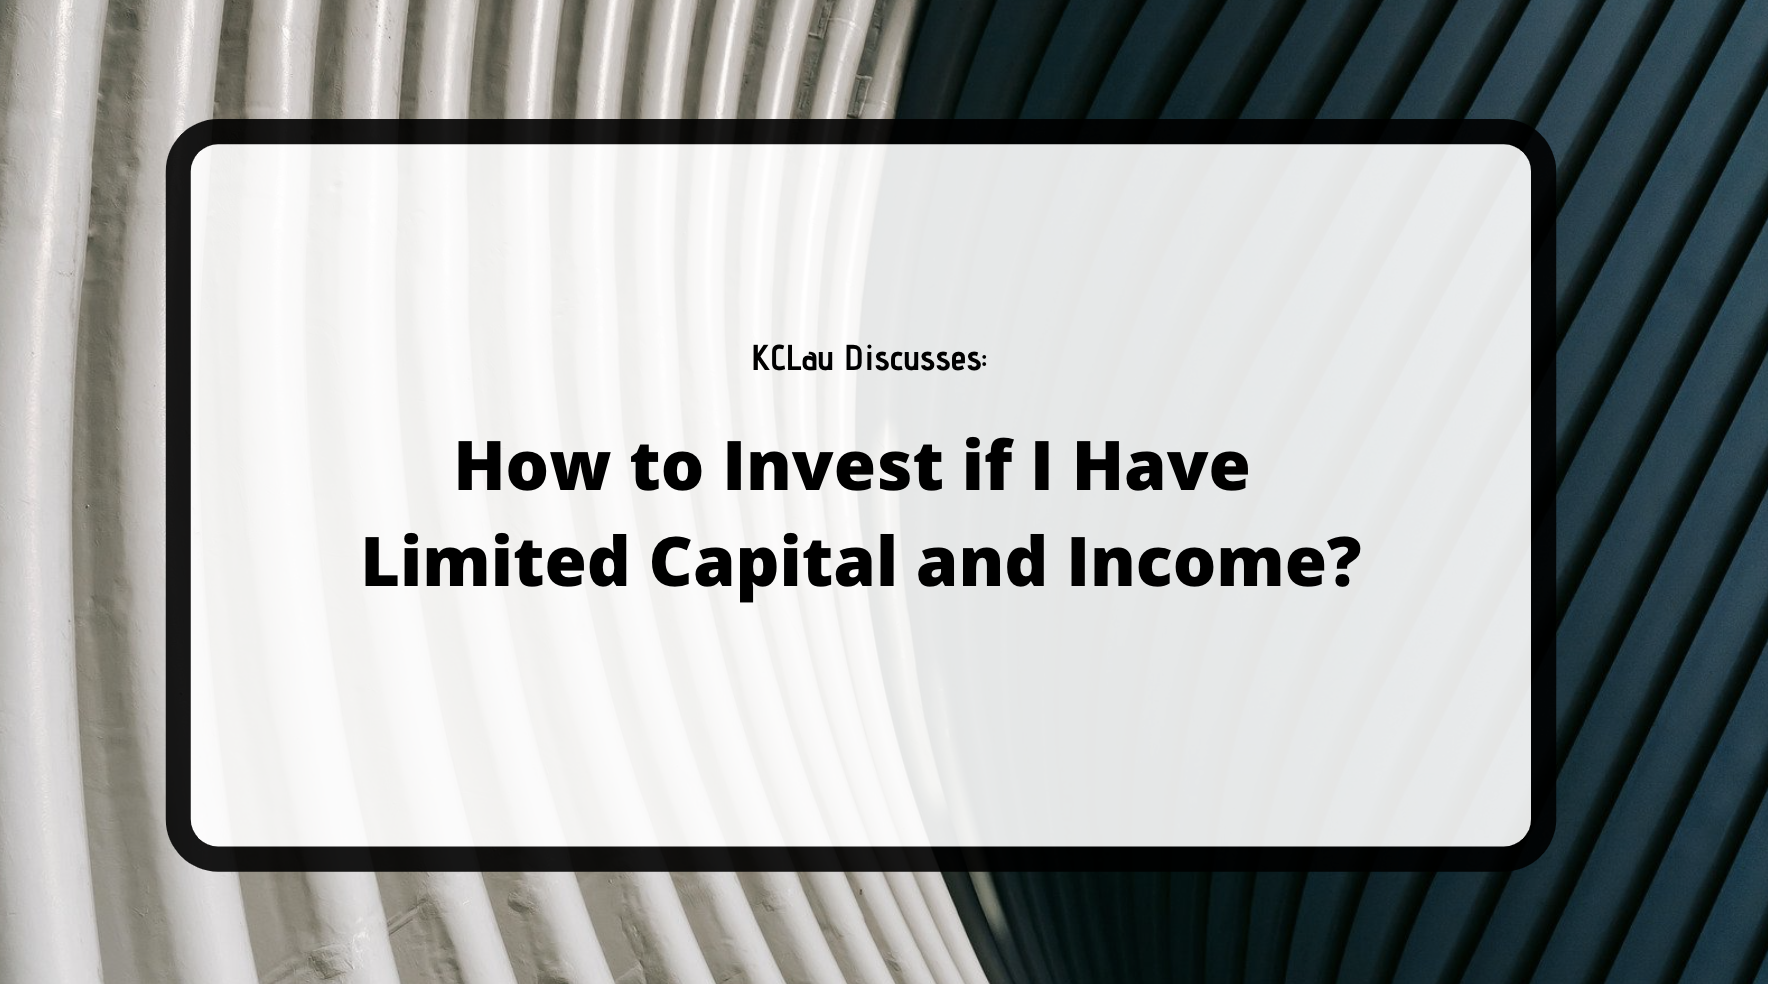 How to Invest If I Have Limited Capital and Income?